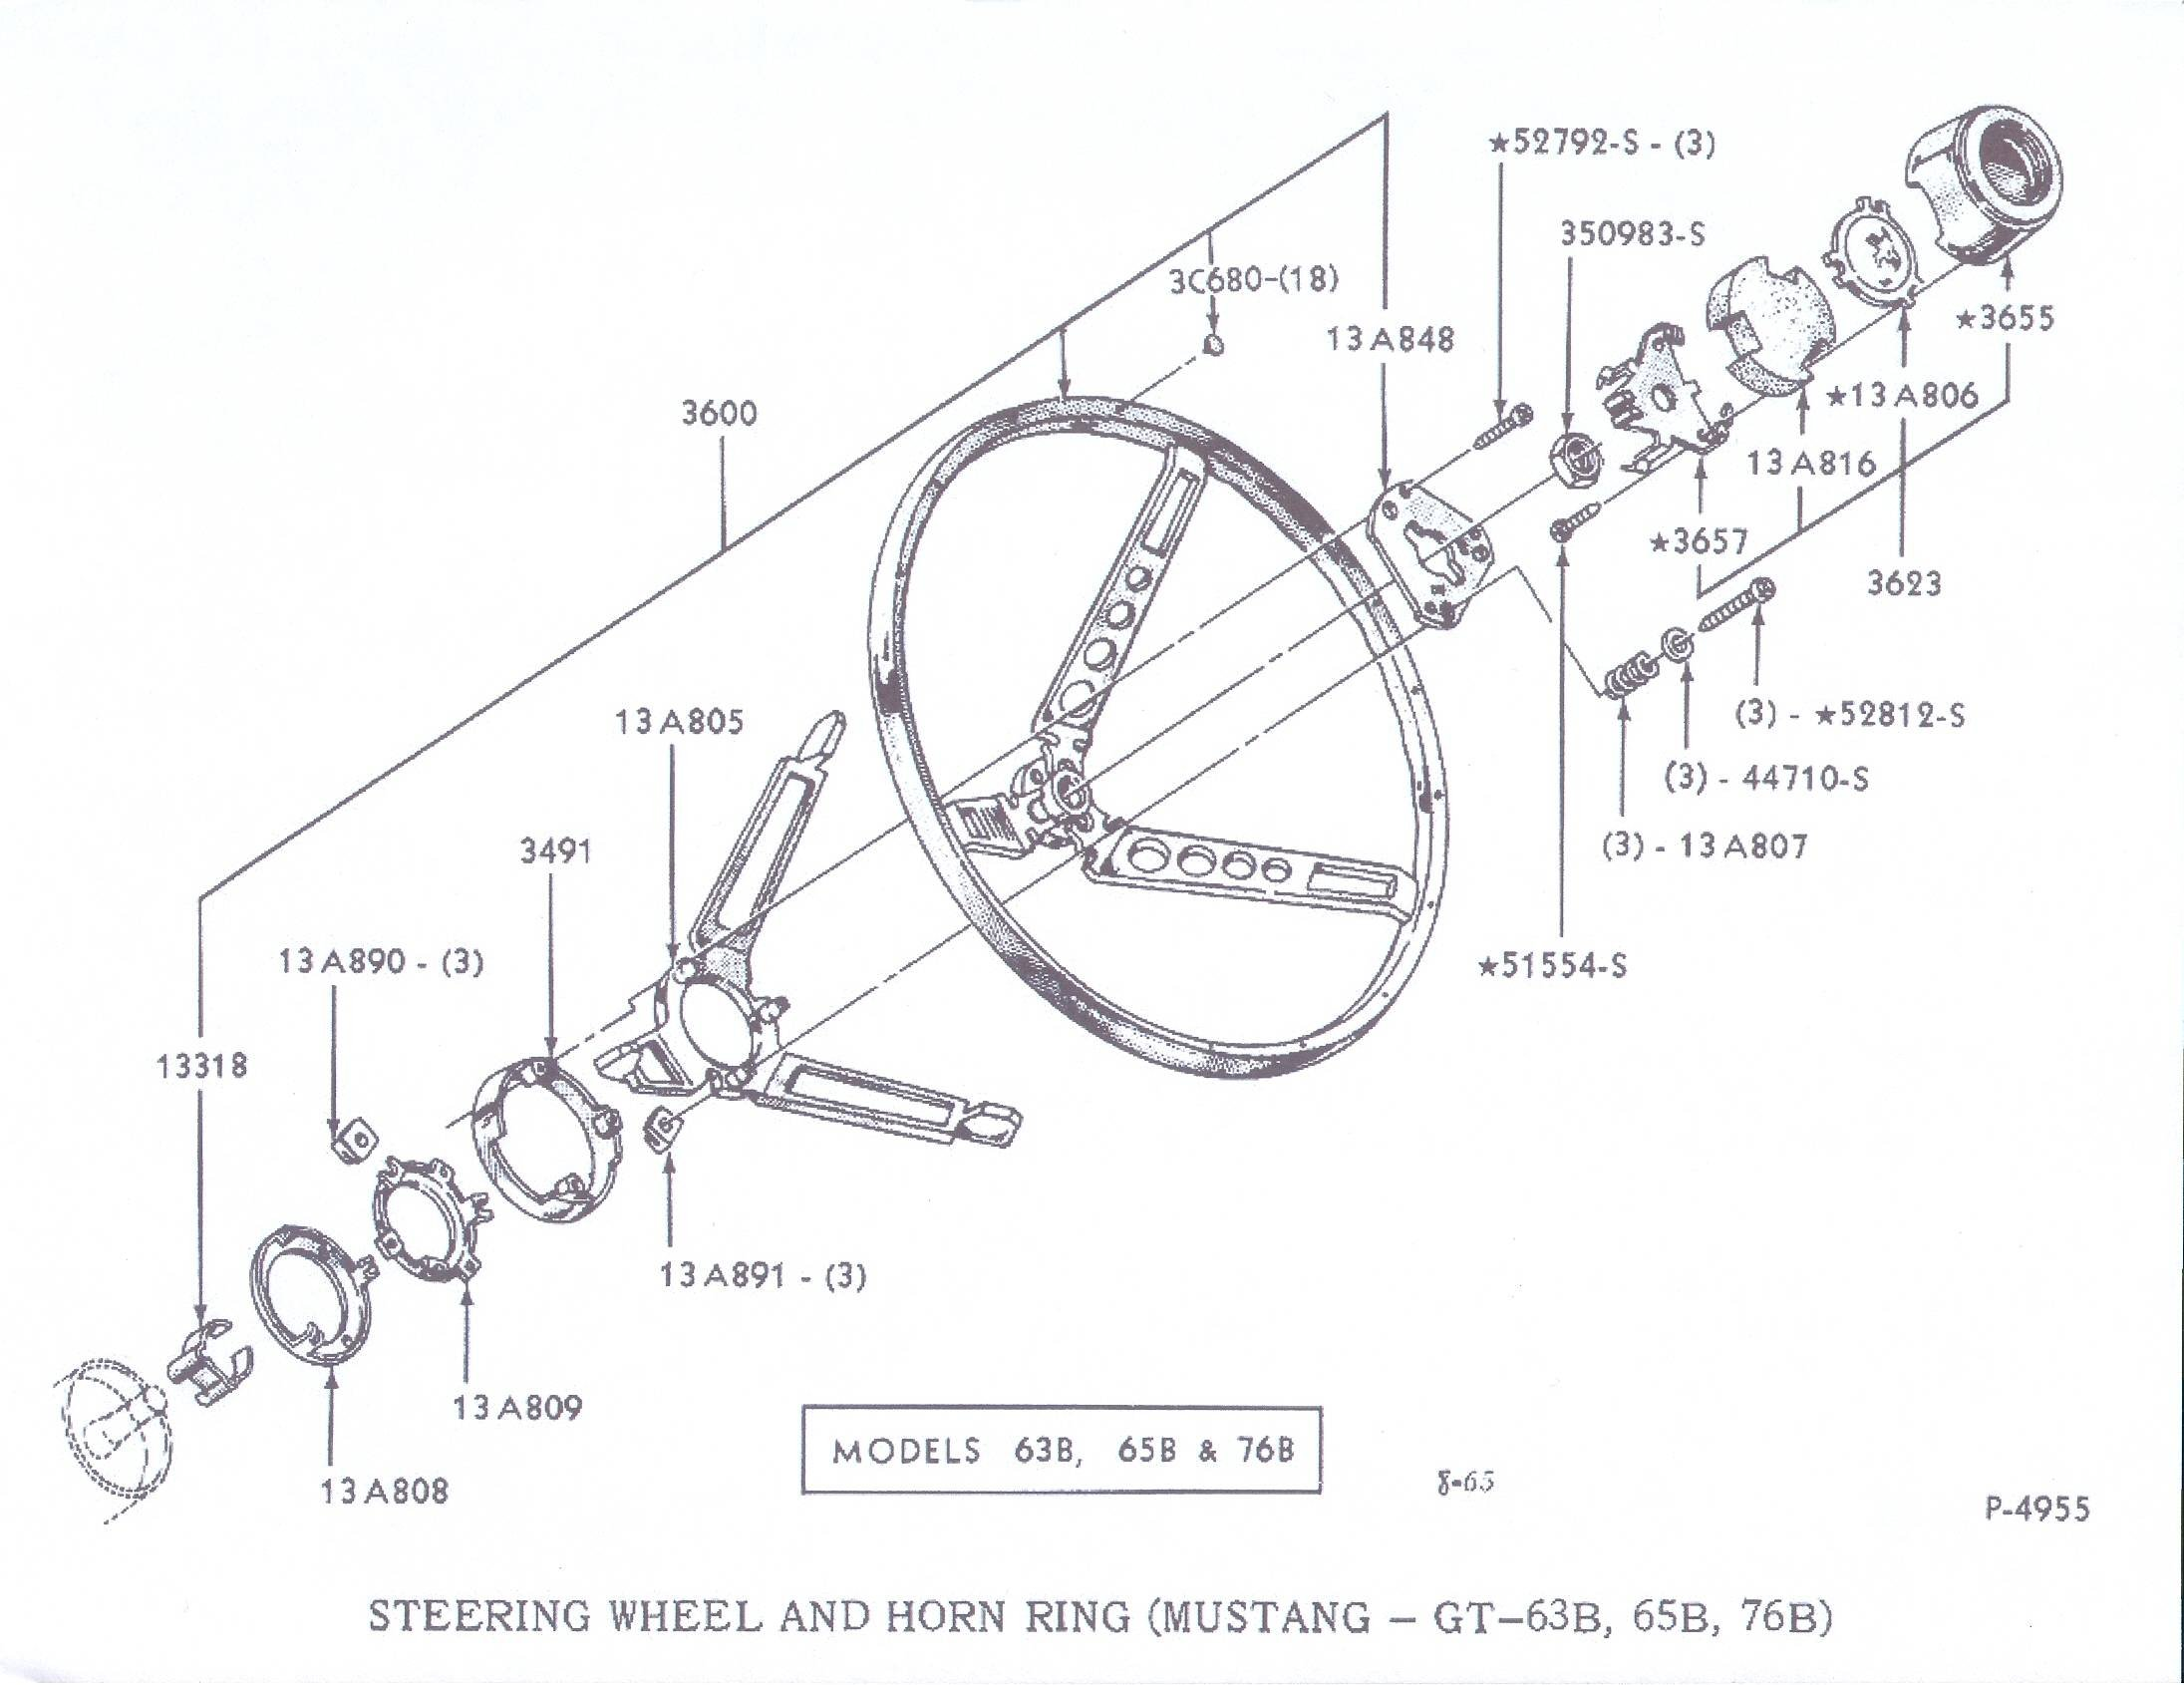 67 camaro wiring diagram 67 discover your wiring diagram collections 66 chevelle steering column diagram